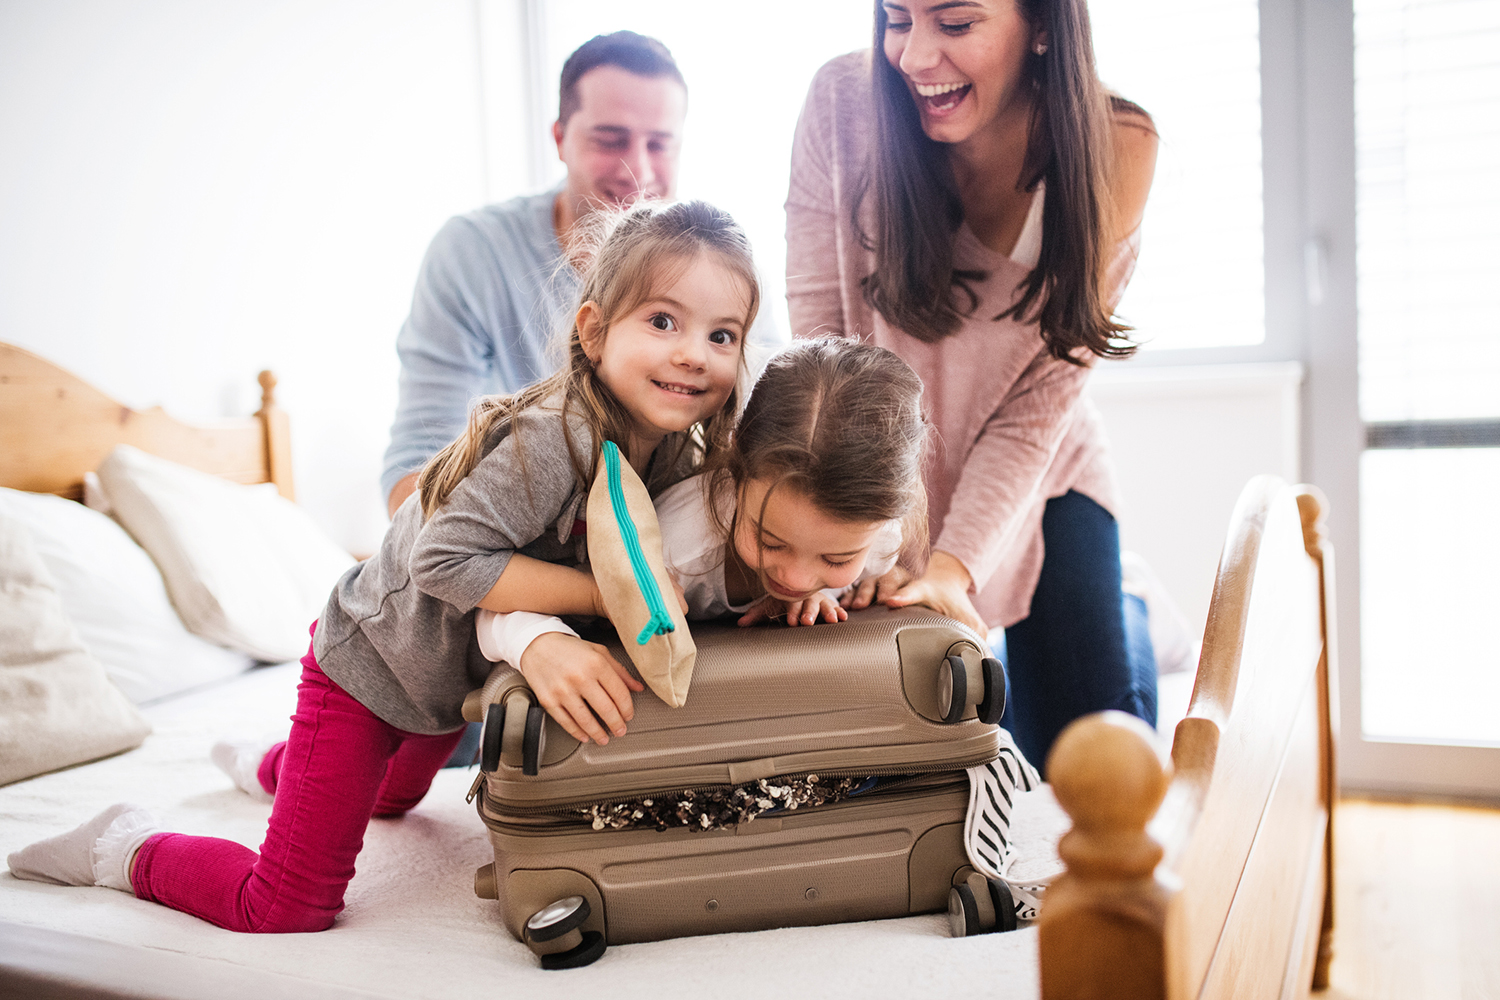 Spring Break Vacation Ideas With Family!